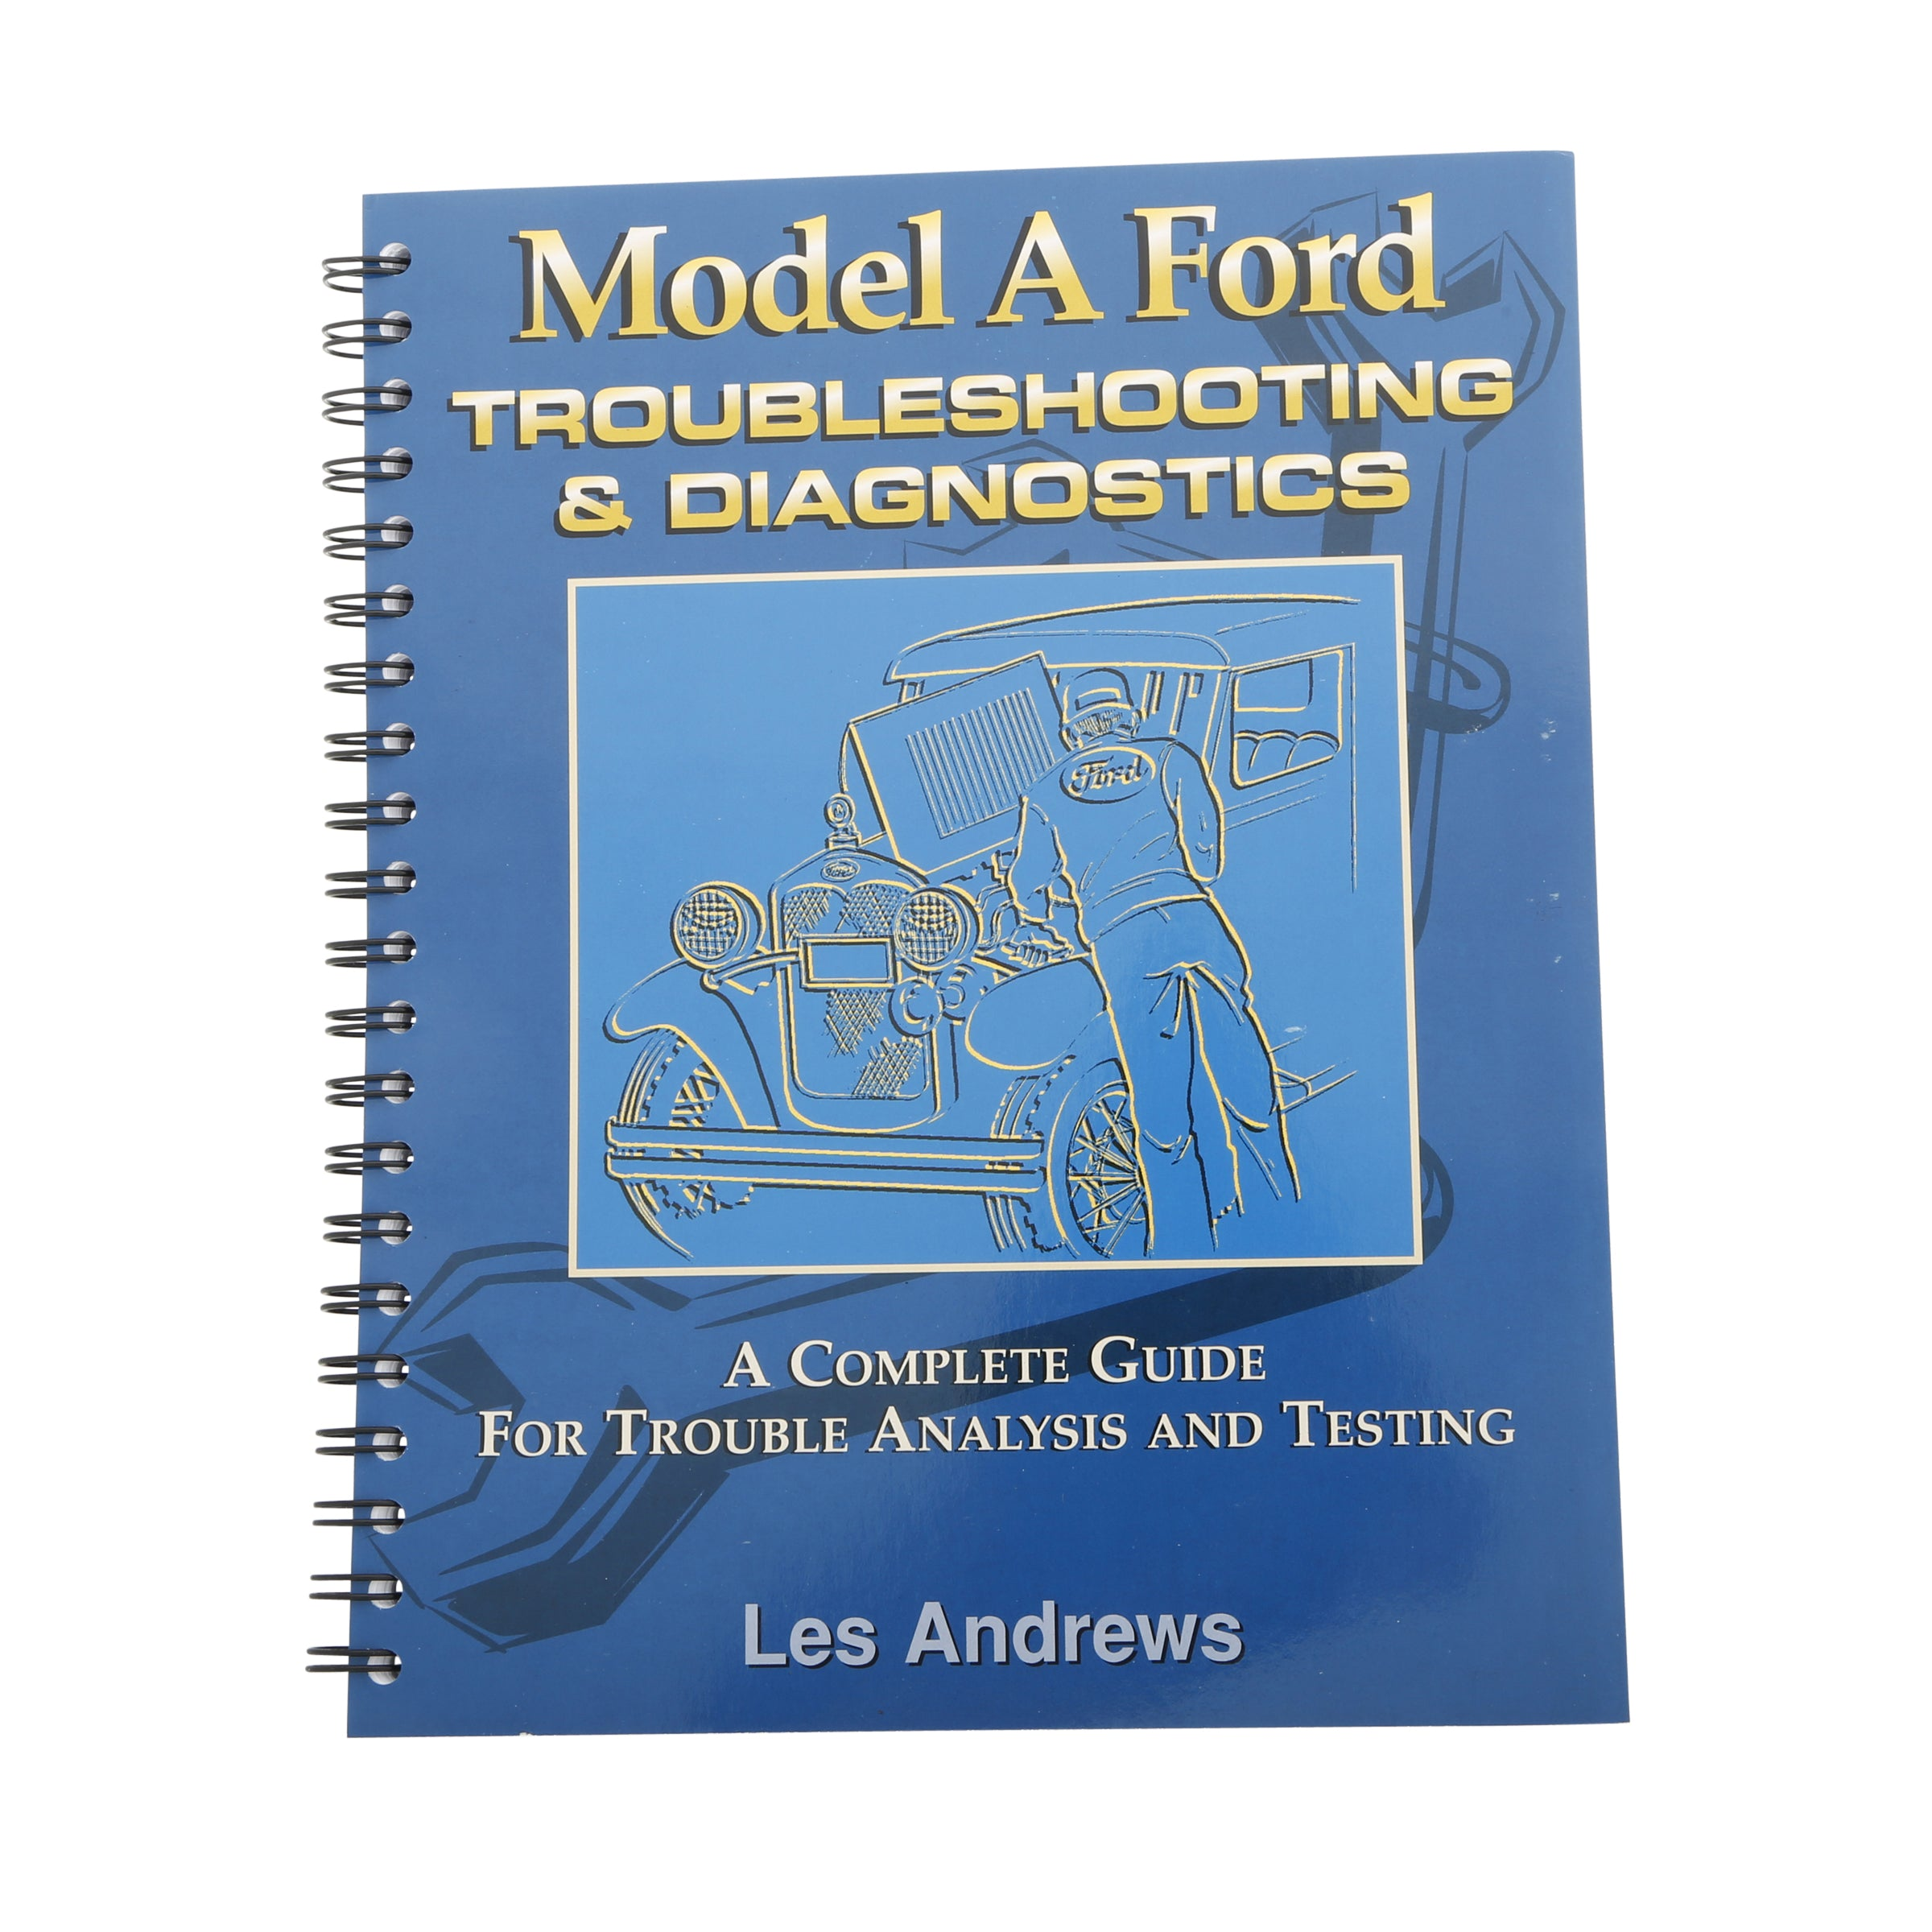 Model A Mechanics Troubleshooting & Diagnostics